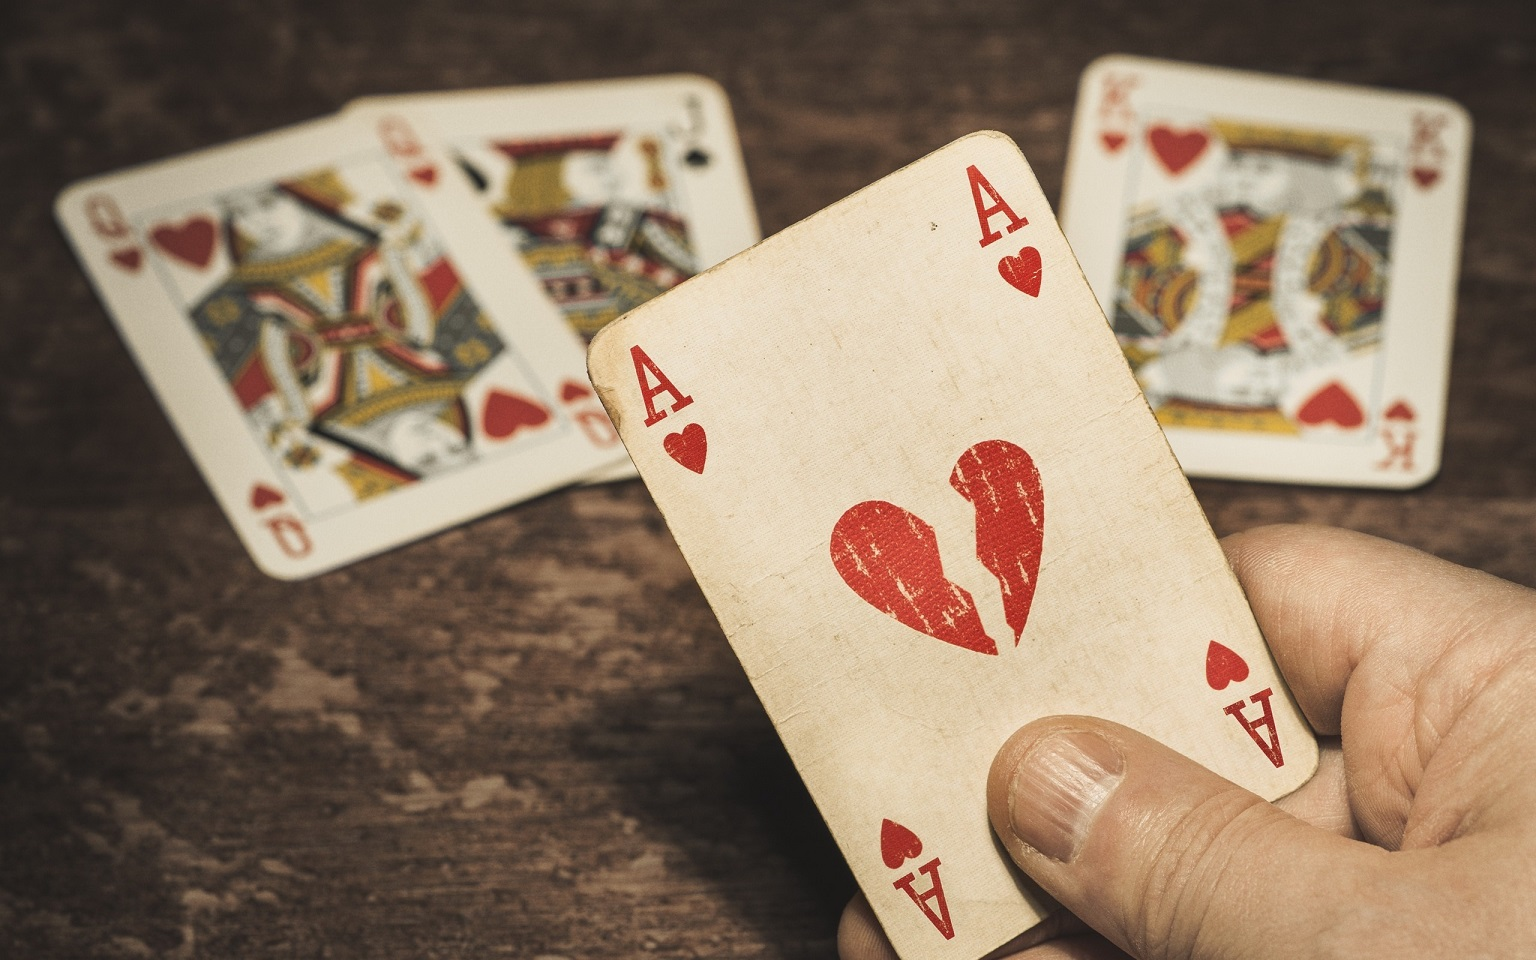 How You Can Lose Money With Gambling